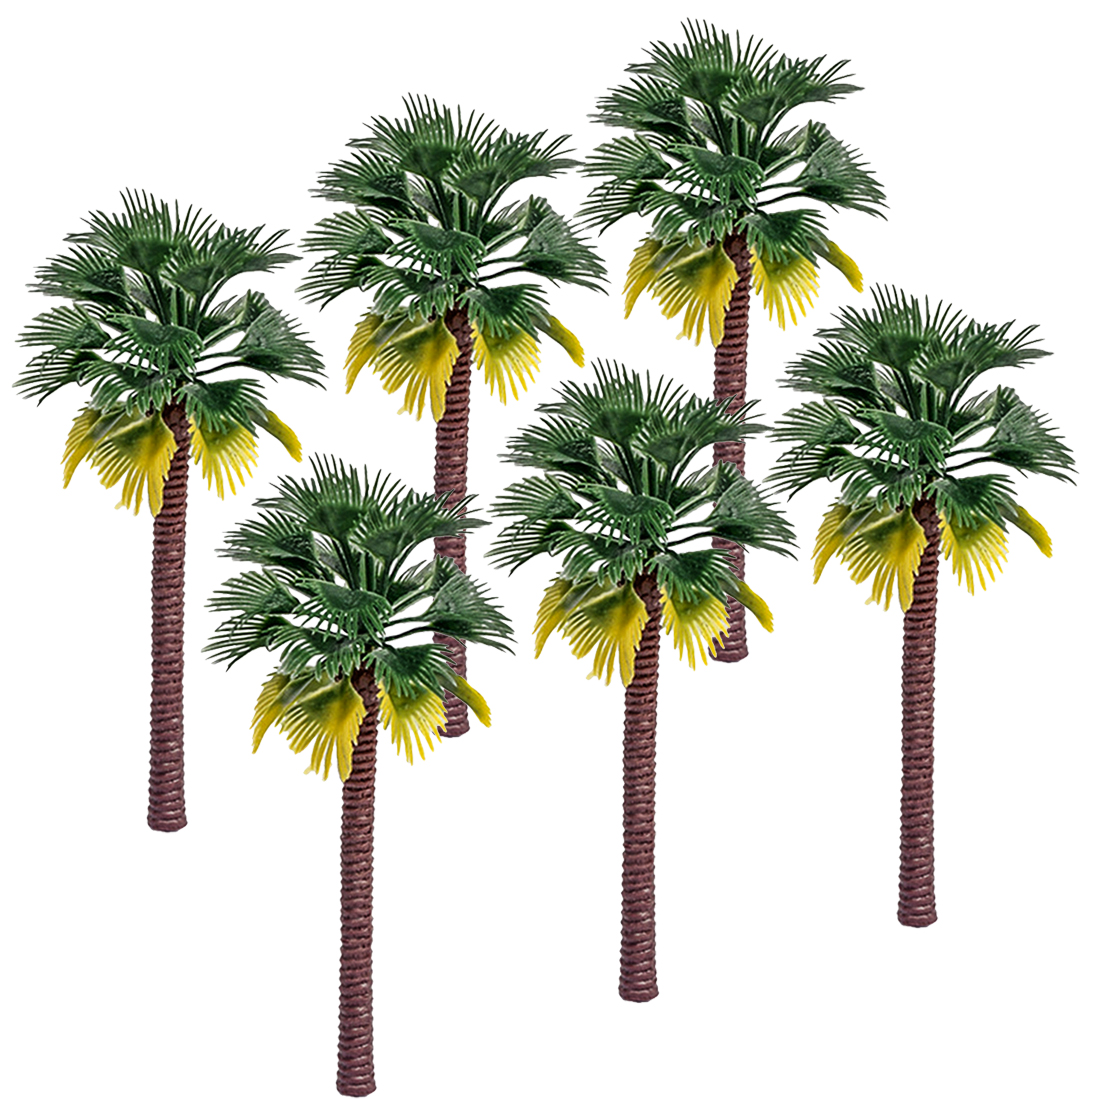 6 Pcs/Lot 15cm Plastic Coconut Palm Tree Train Railroad Architecture Diorama Tree Model Accessories Toys Hobbies For Kids